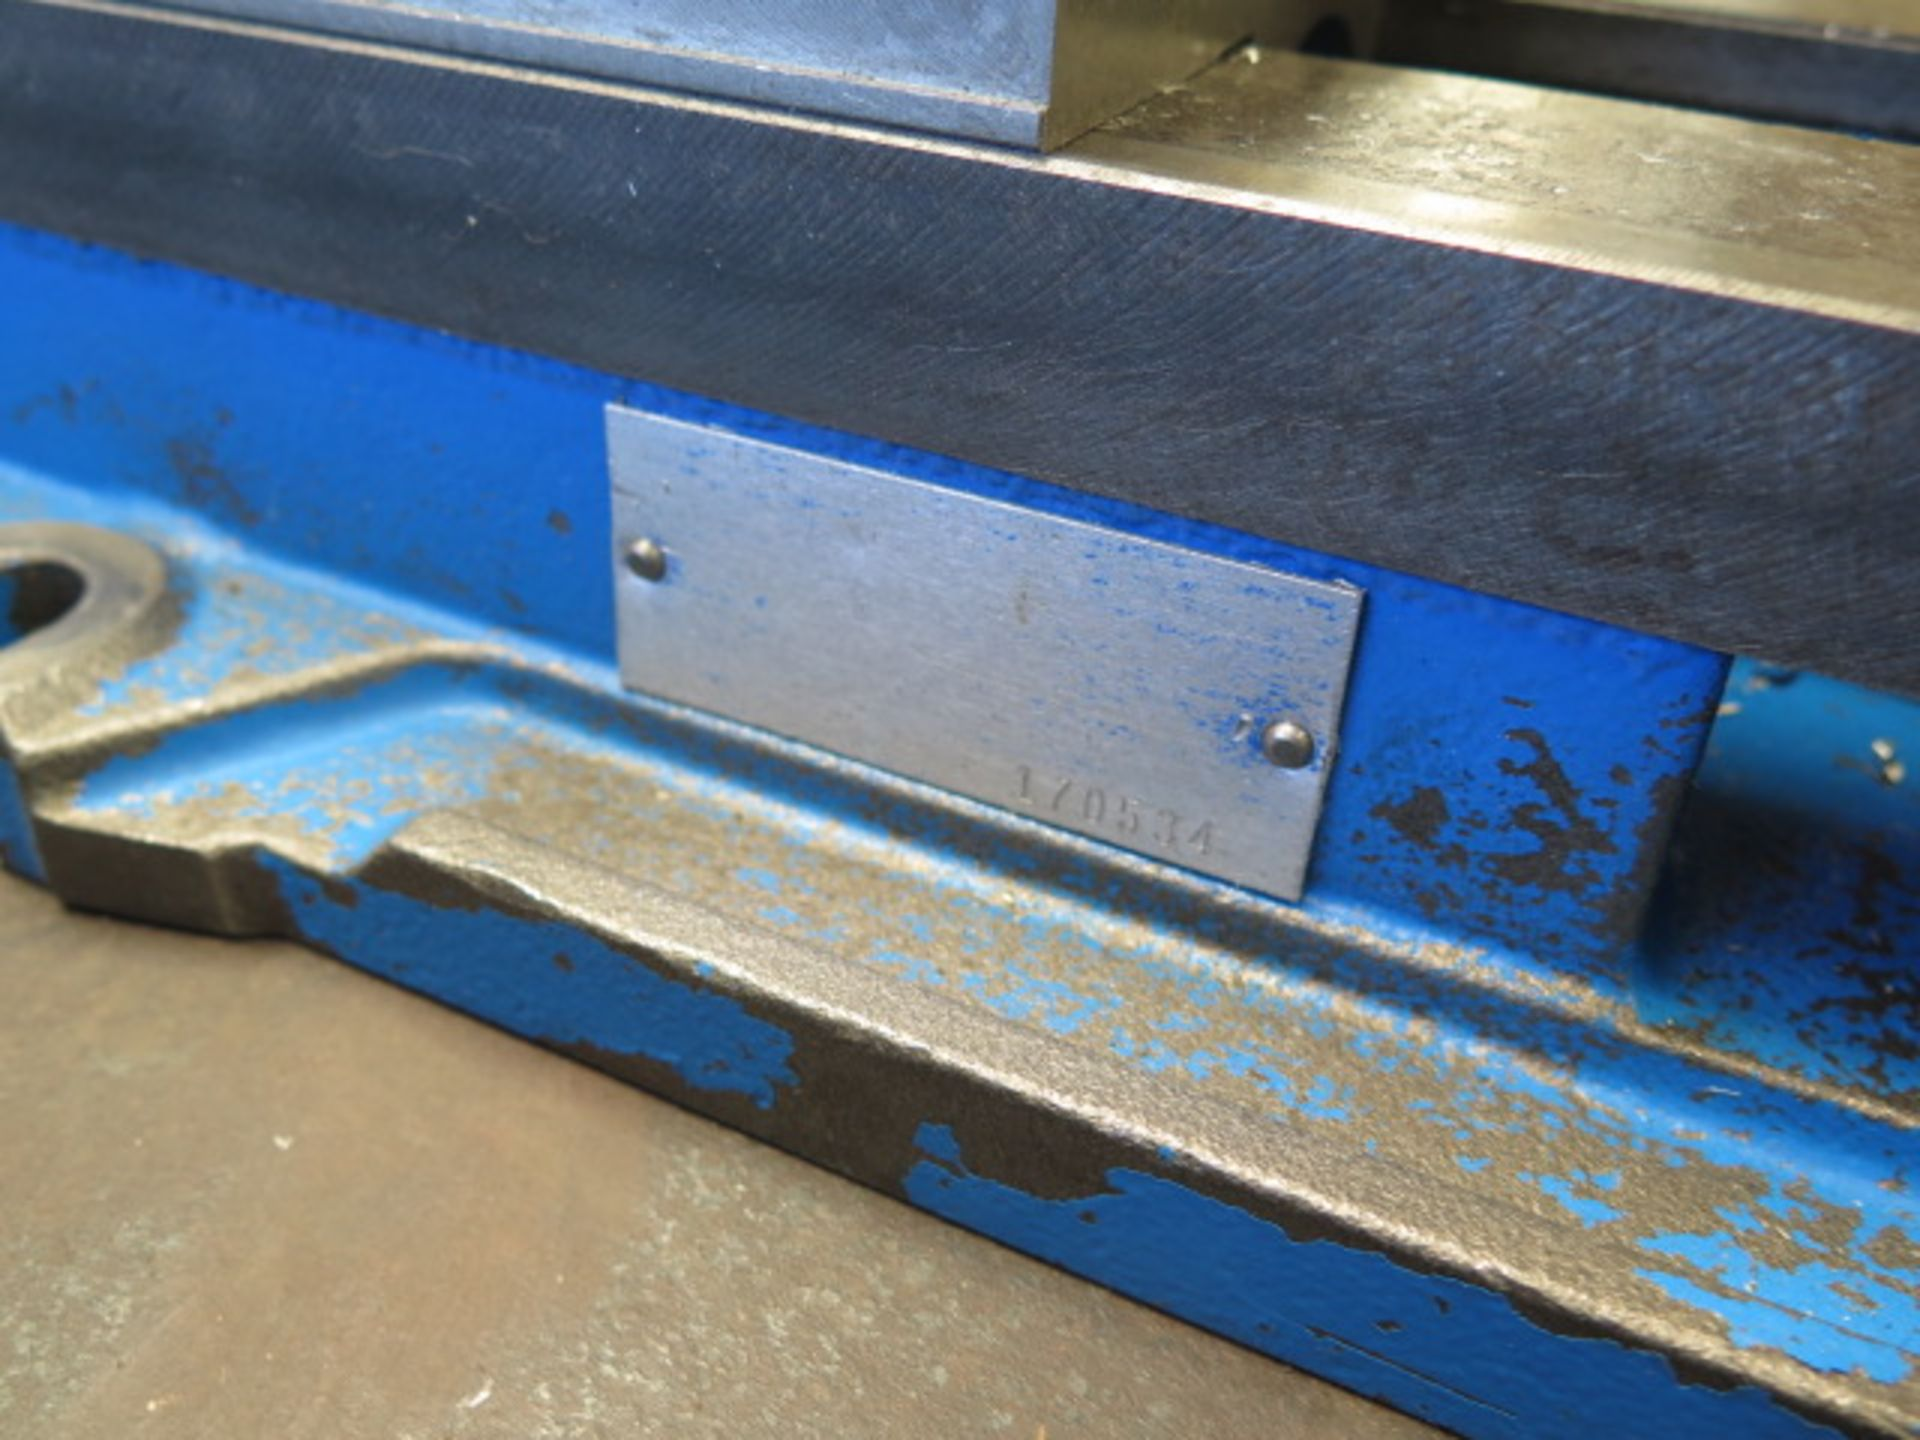 "Kurt D675 6"" Angle-Lock Vise (SOLD AS-IS - NO WARRANTY) - Image 3 of 3"